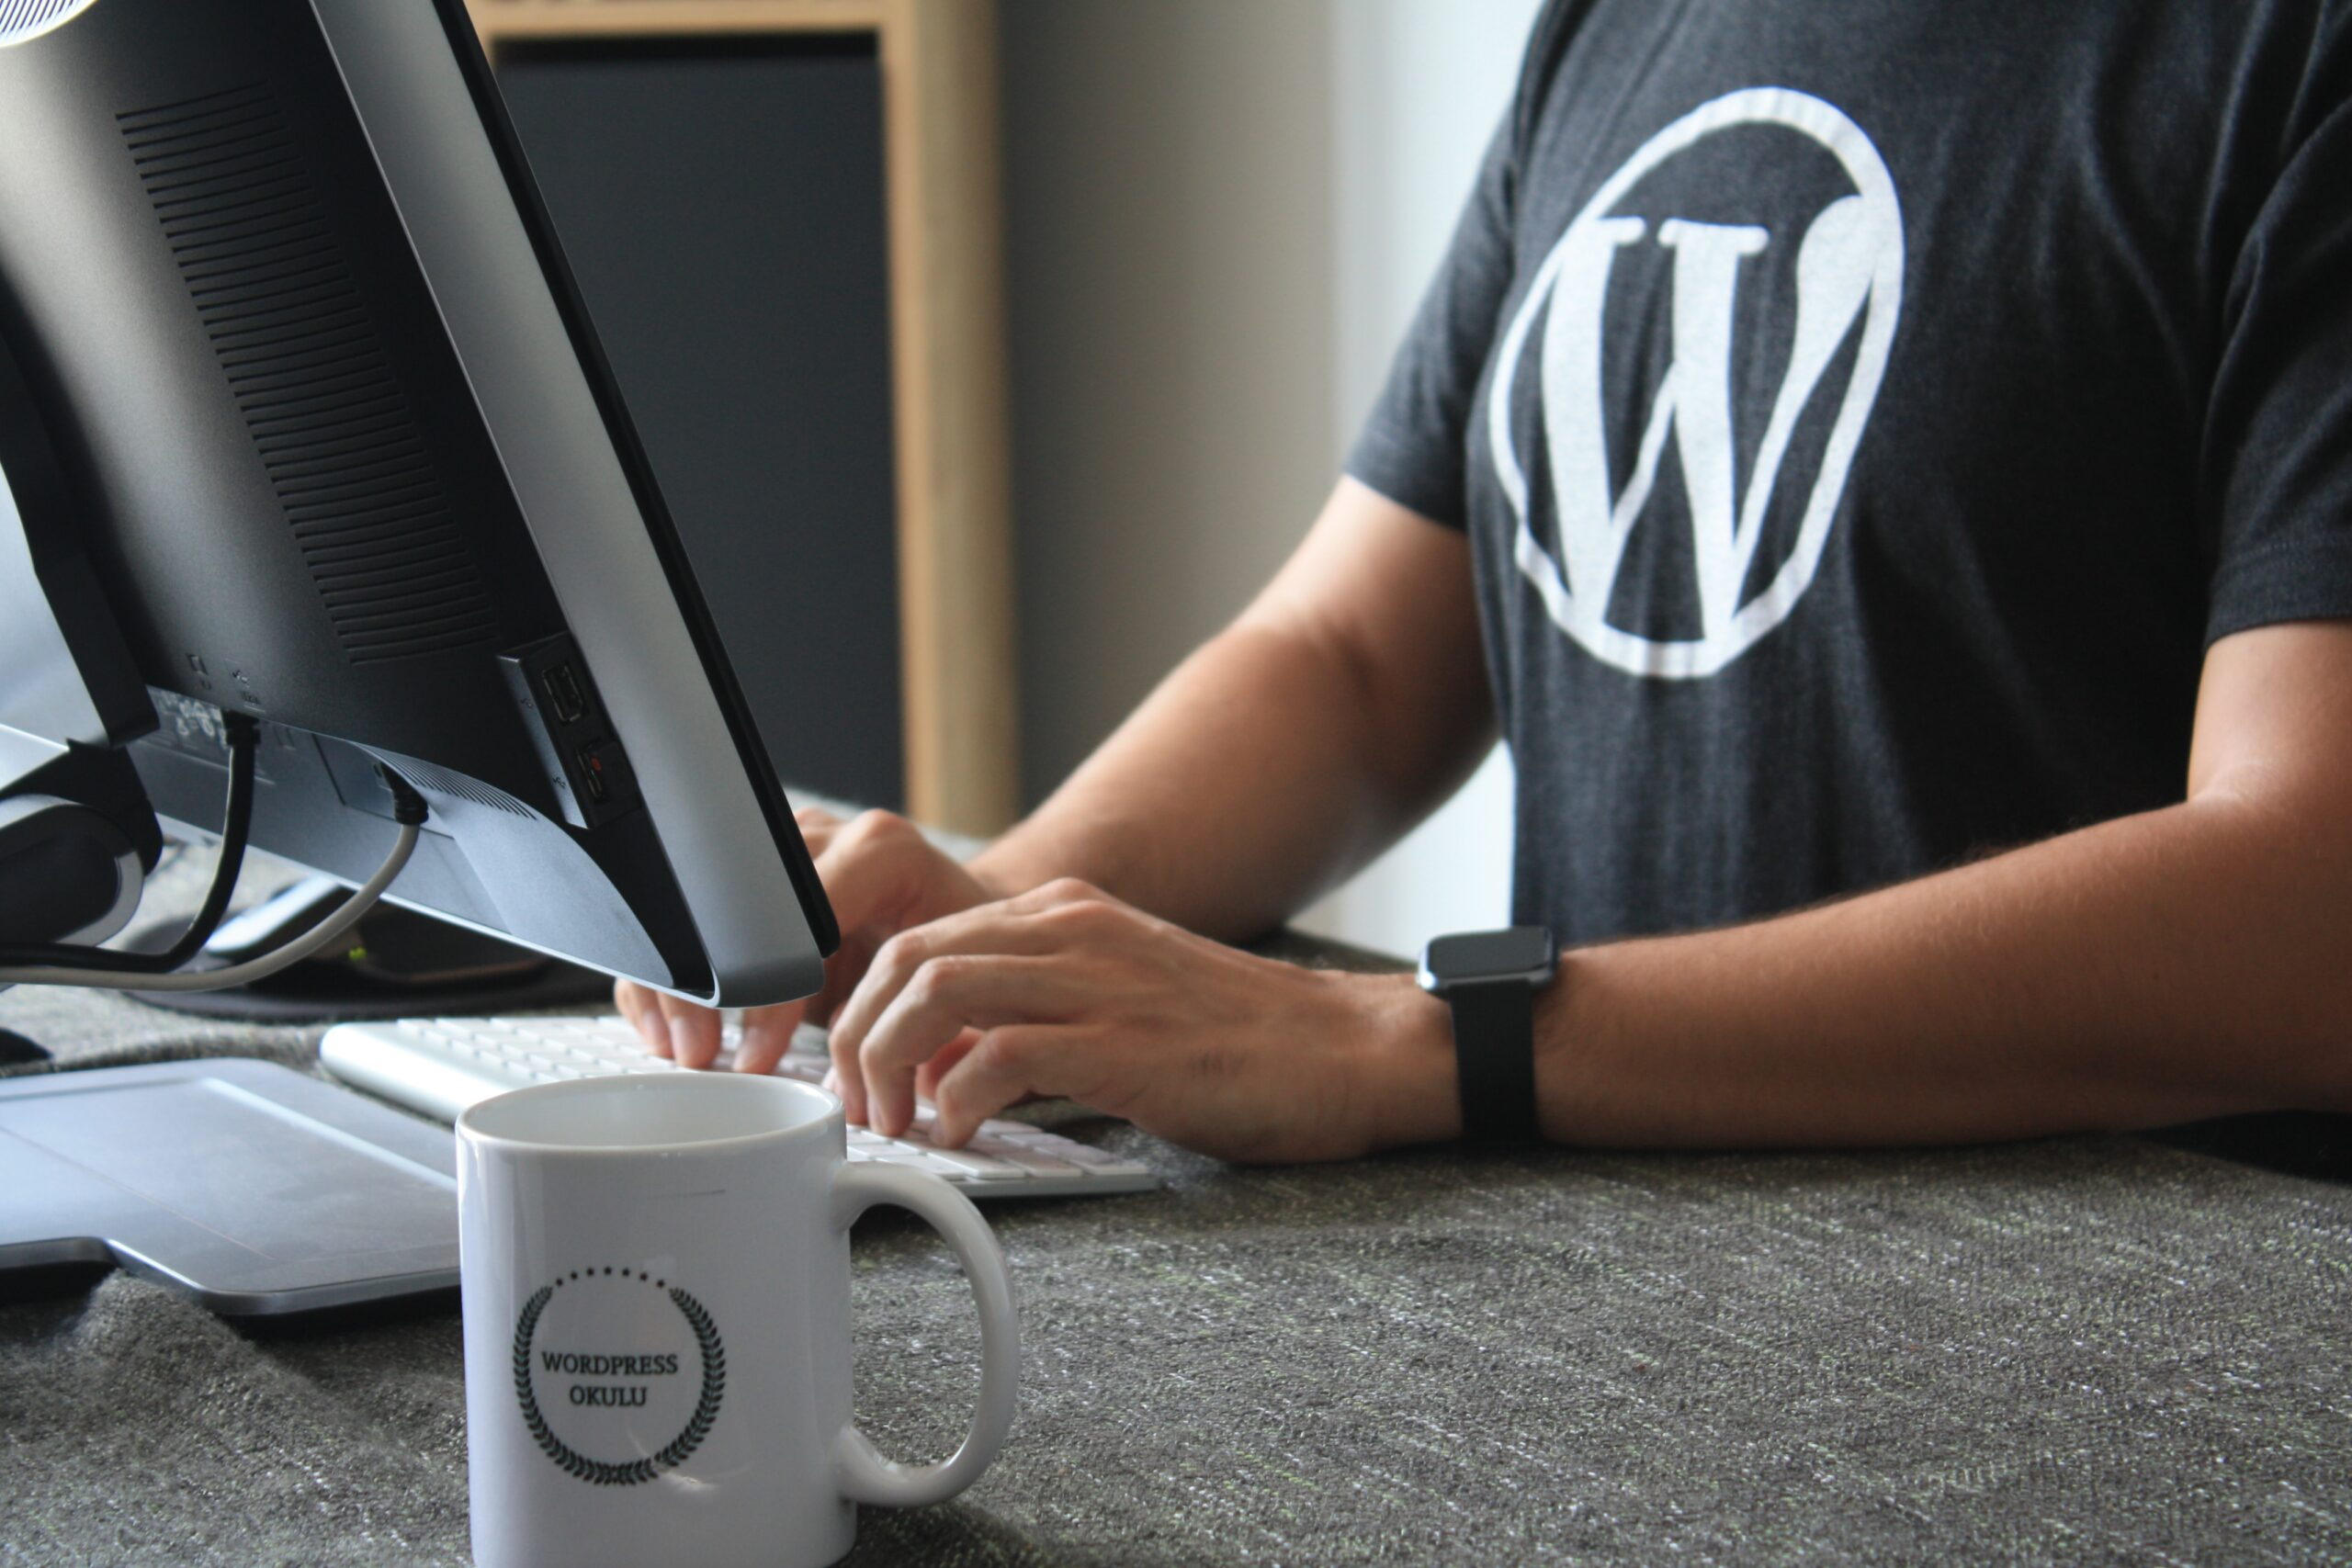 Best WordPress Masterclass 2020 - Singapore Reviews & Testimonials